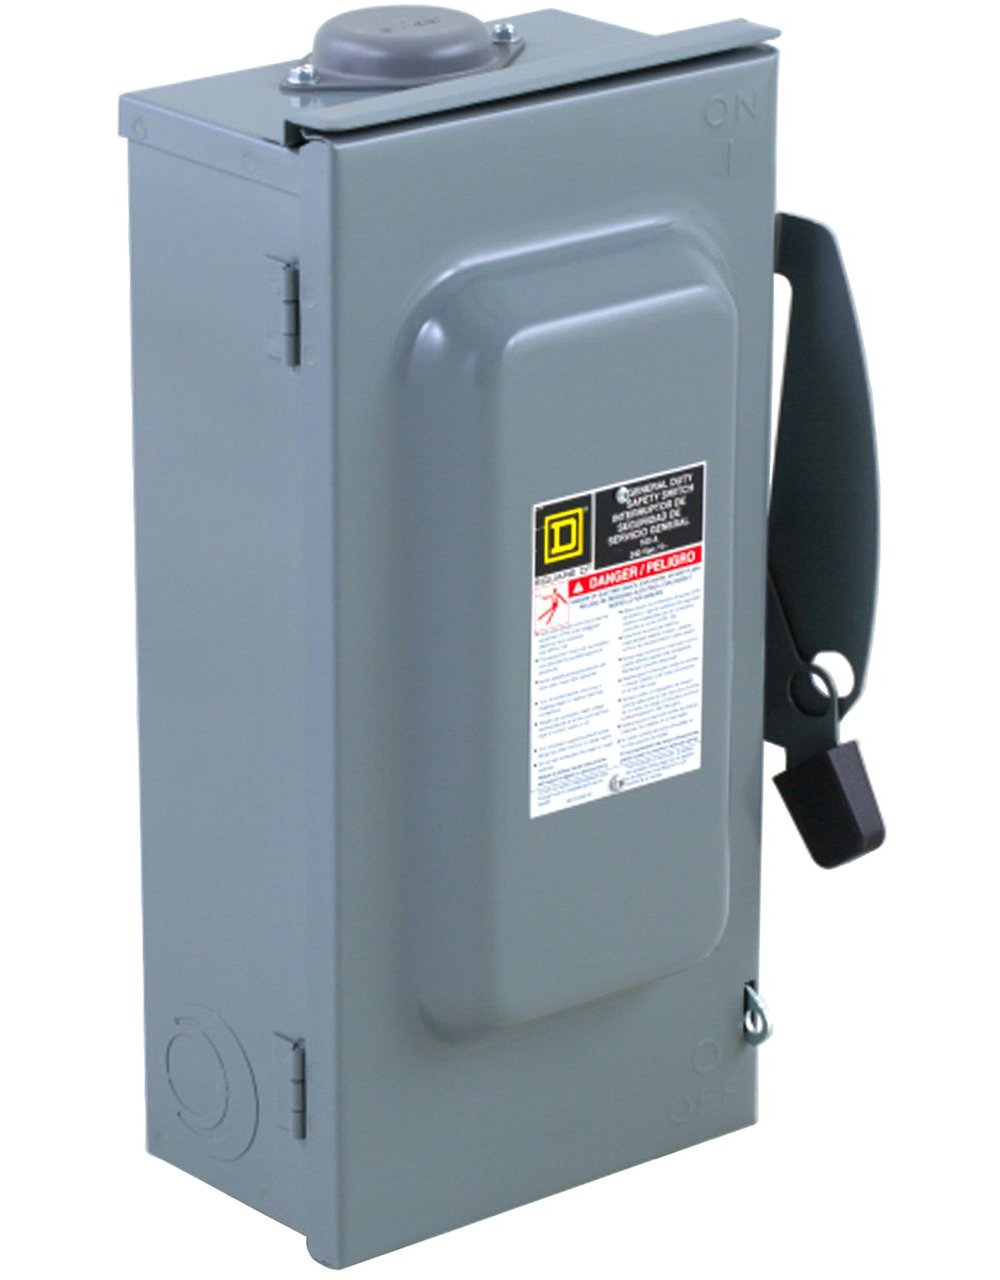 Square D by Schneider Electric D323NRB 100-Amp 240-Volt 3-Pole Fusible Outdoor General Duty Safety Switch, ,